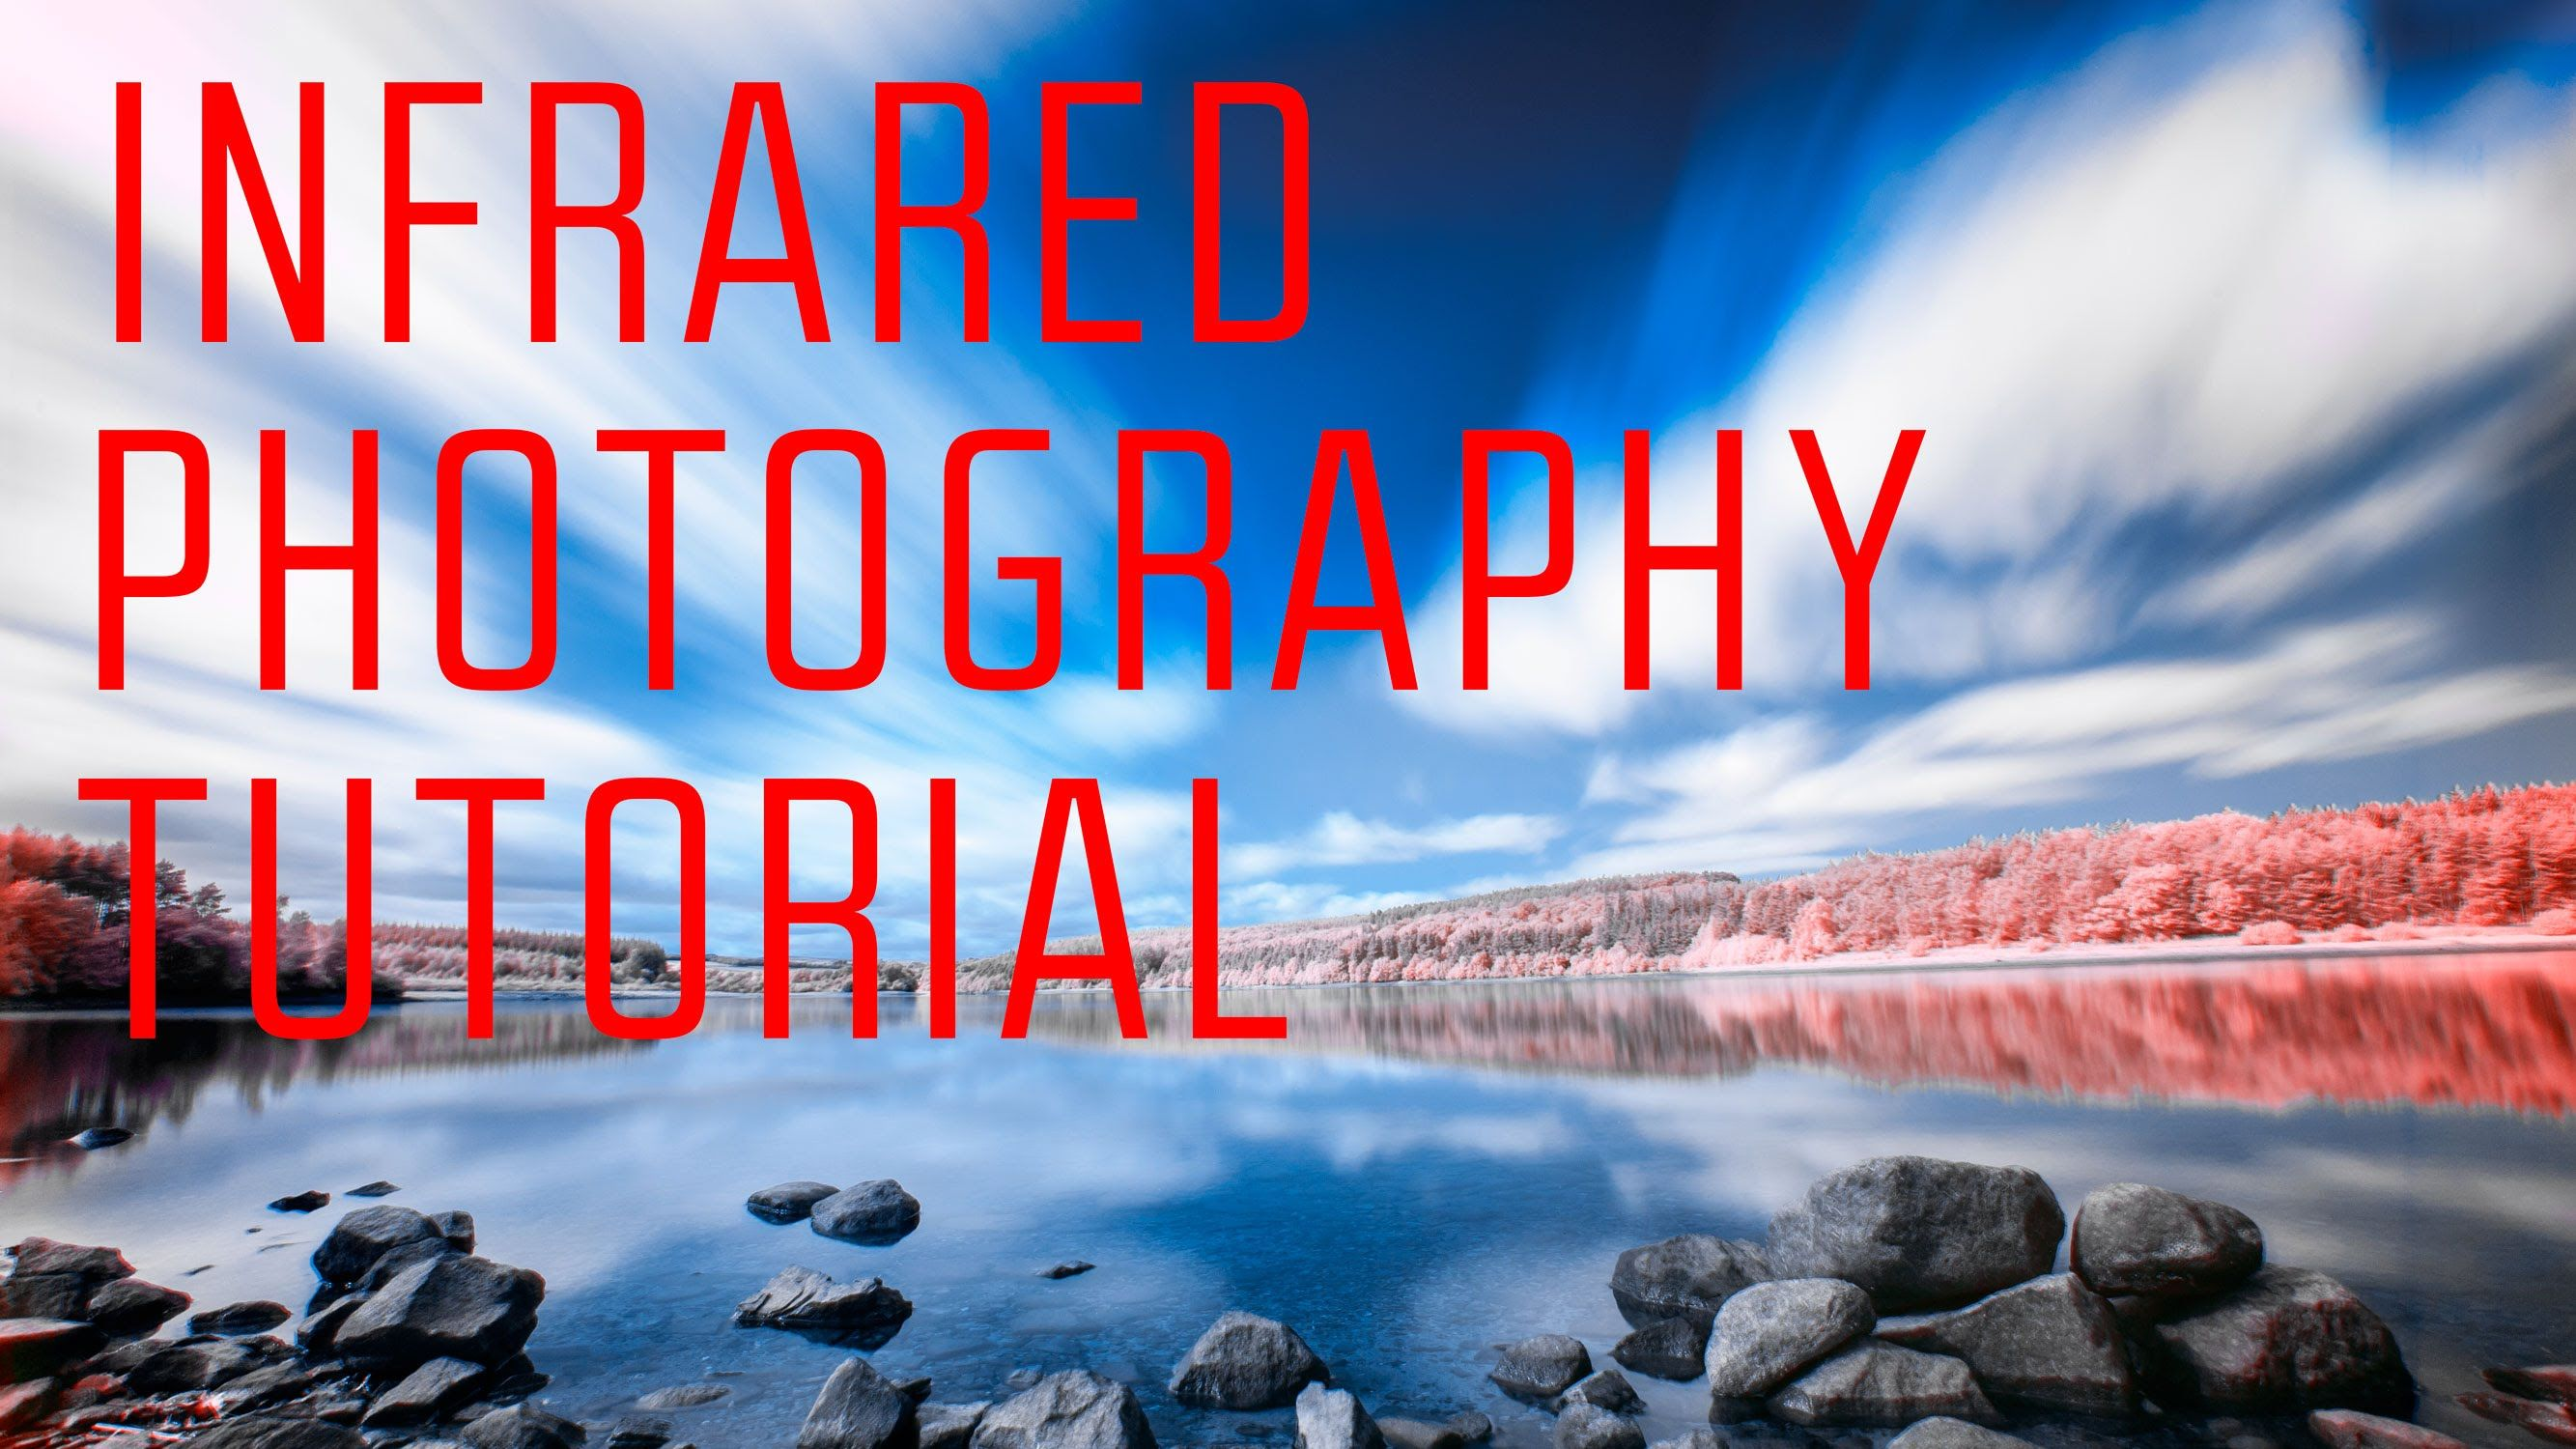 Photography Tutorials Infrared Photography Tutorial Part 1 Shooting The Image